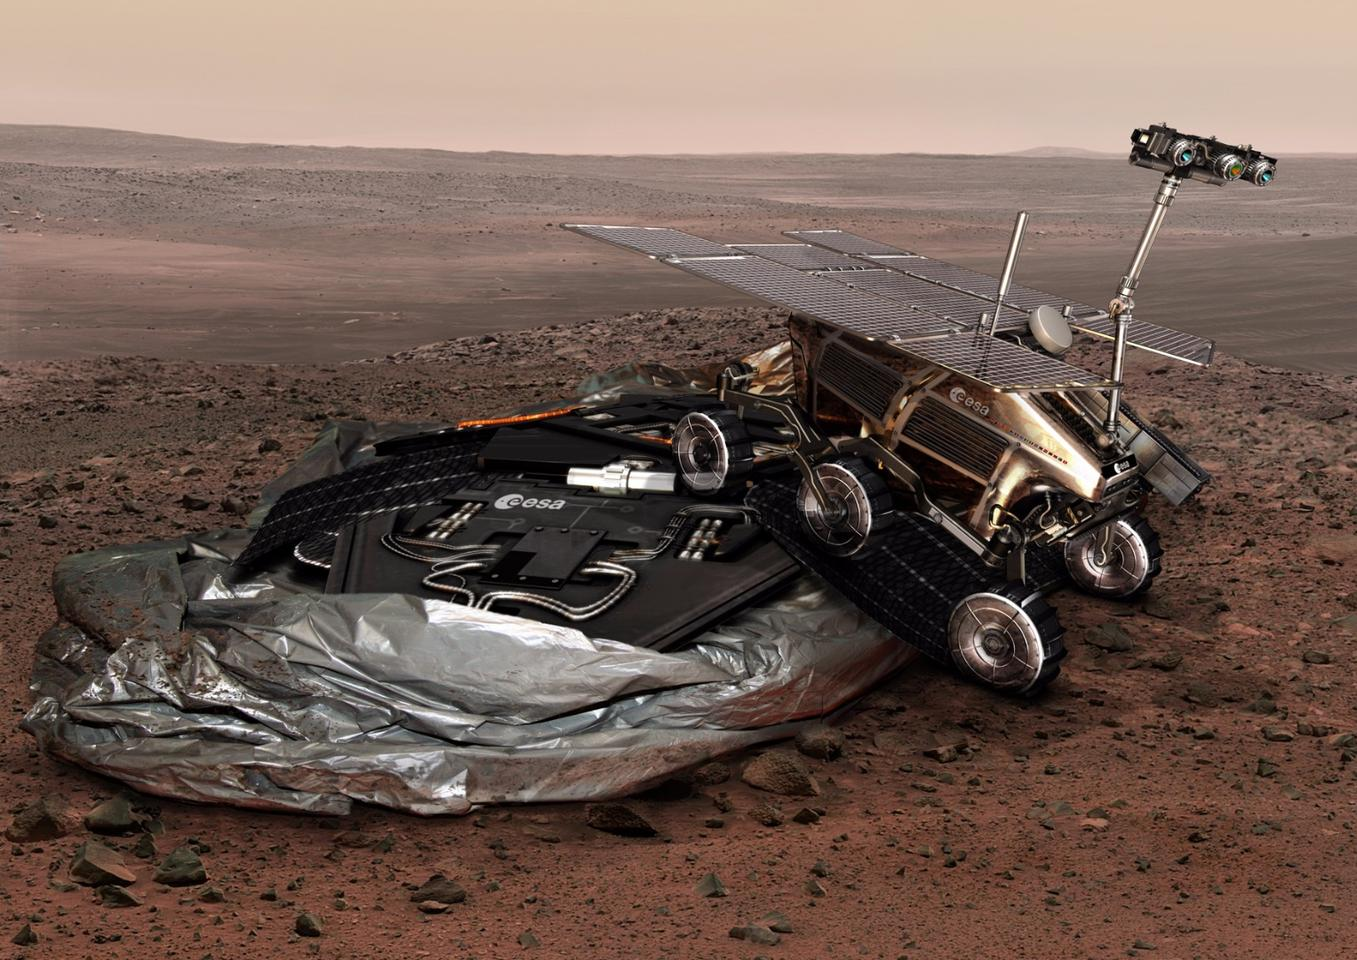 The ExoMars 2018 mission has been delayed until 2020